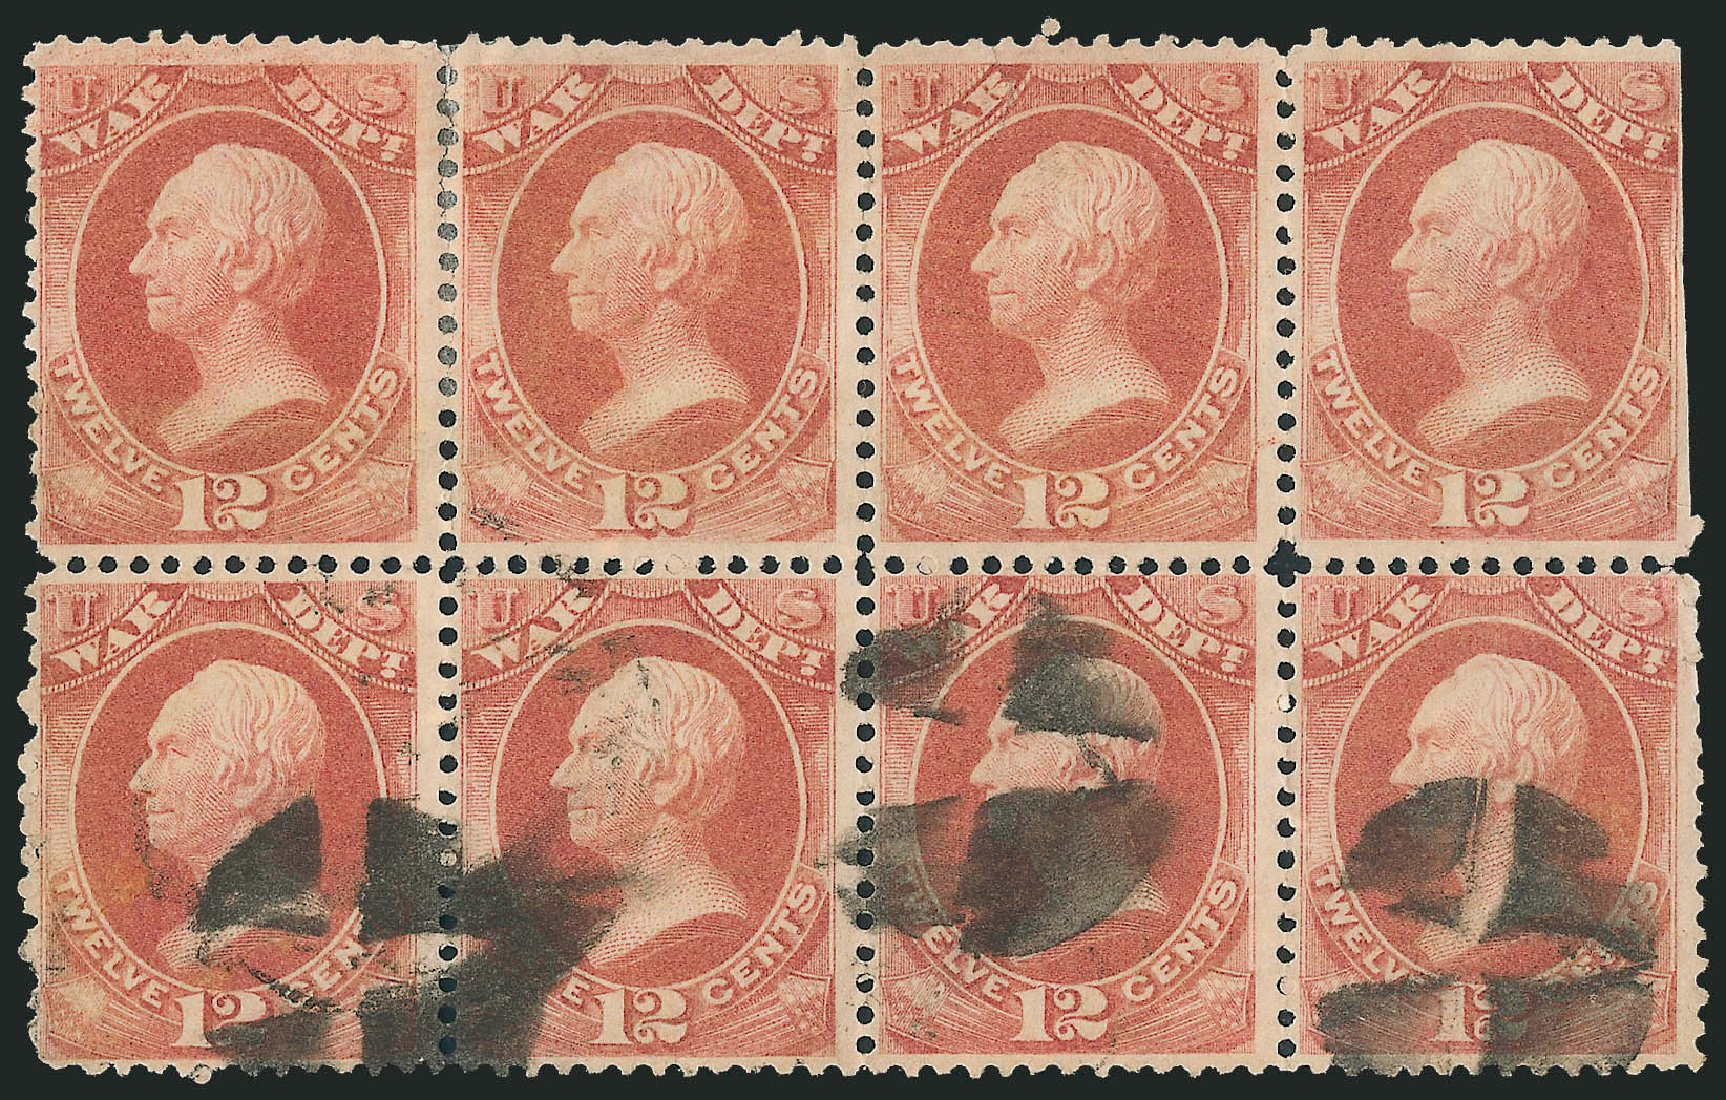 US Stamps Price Scott Catalogue O89: 1873 12c War Official. Robert Siegel Auction Galleries, Dec 2010, Sale 1003, Lot 5469